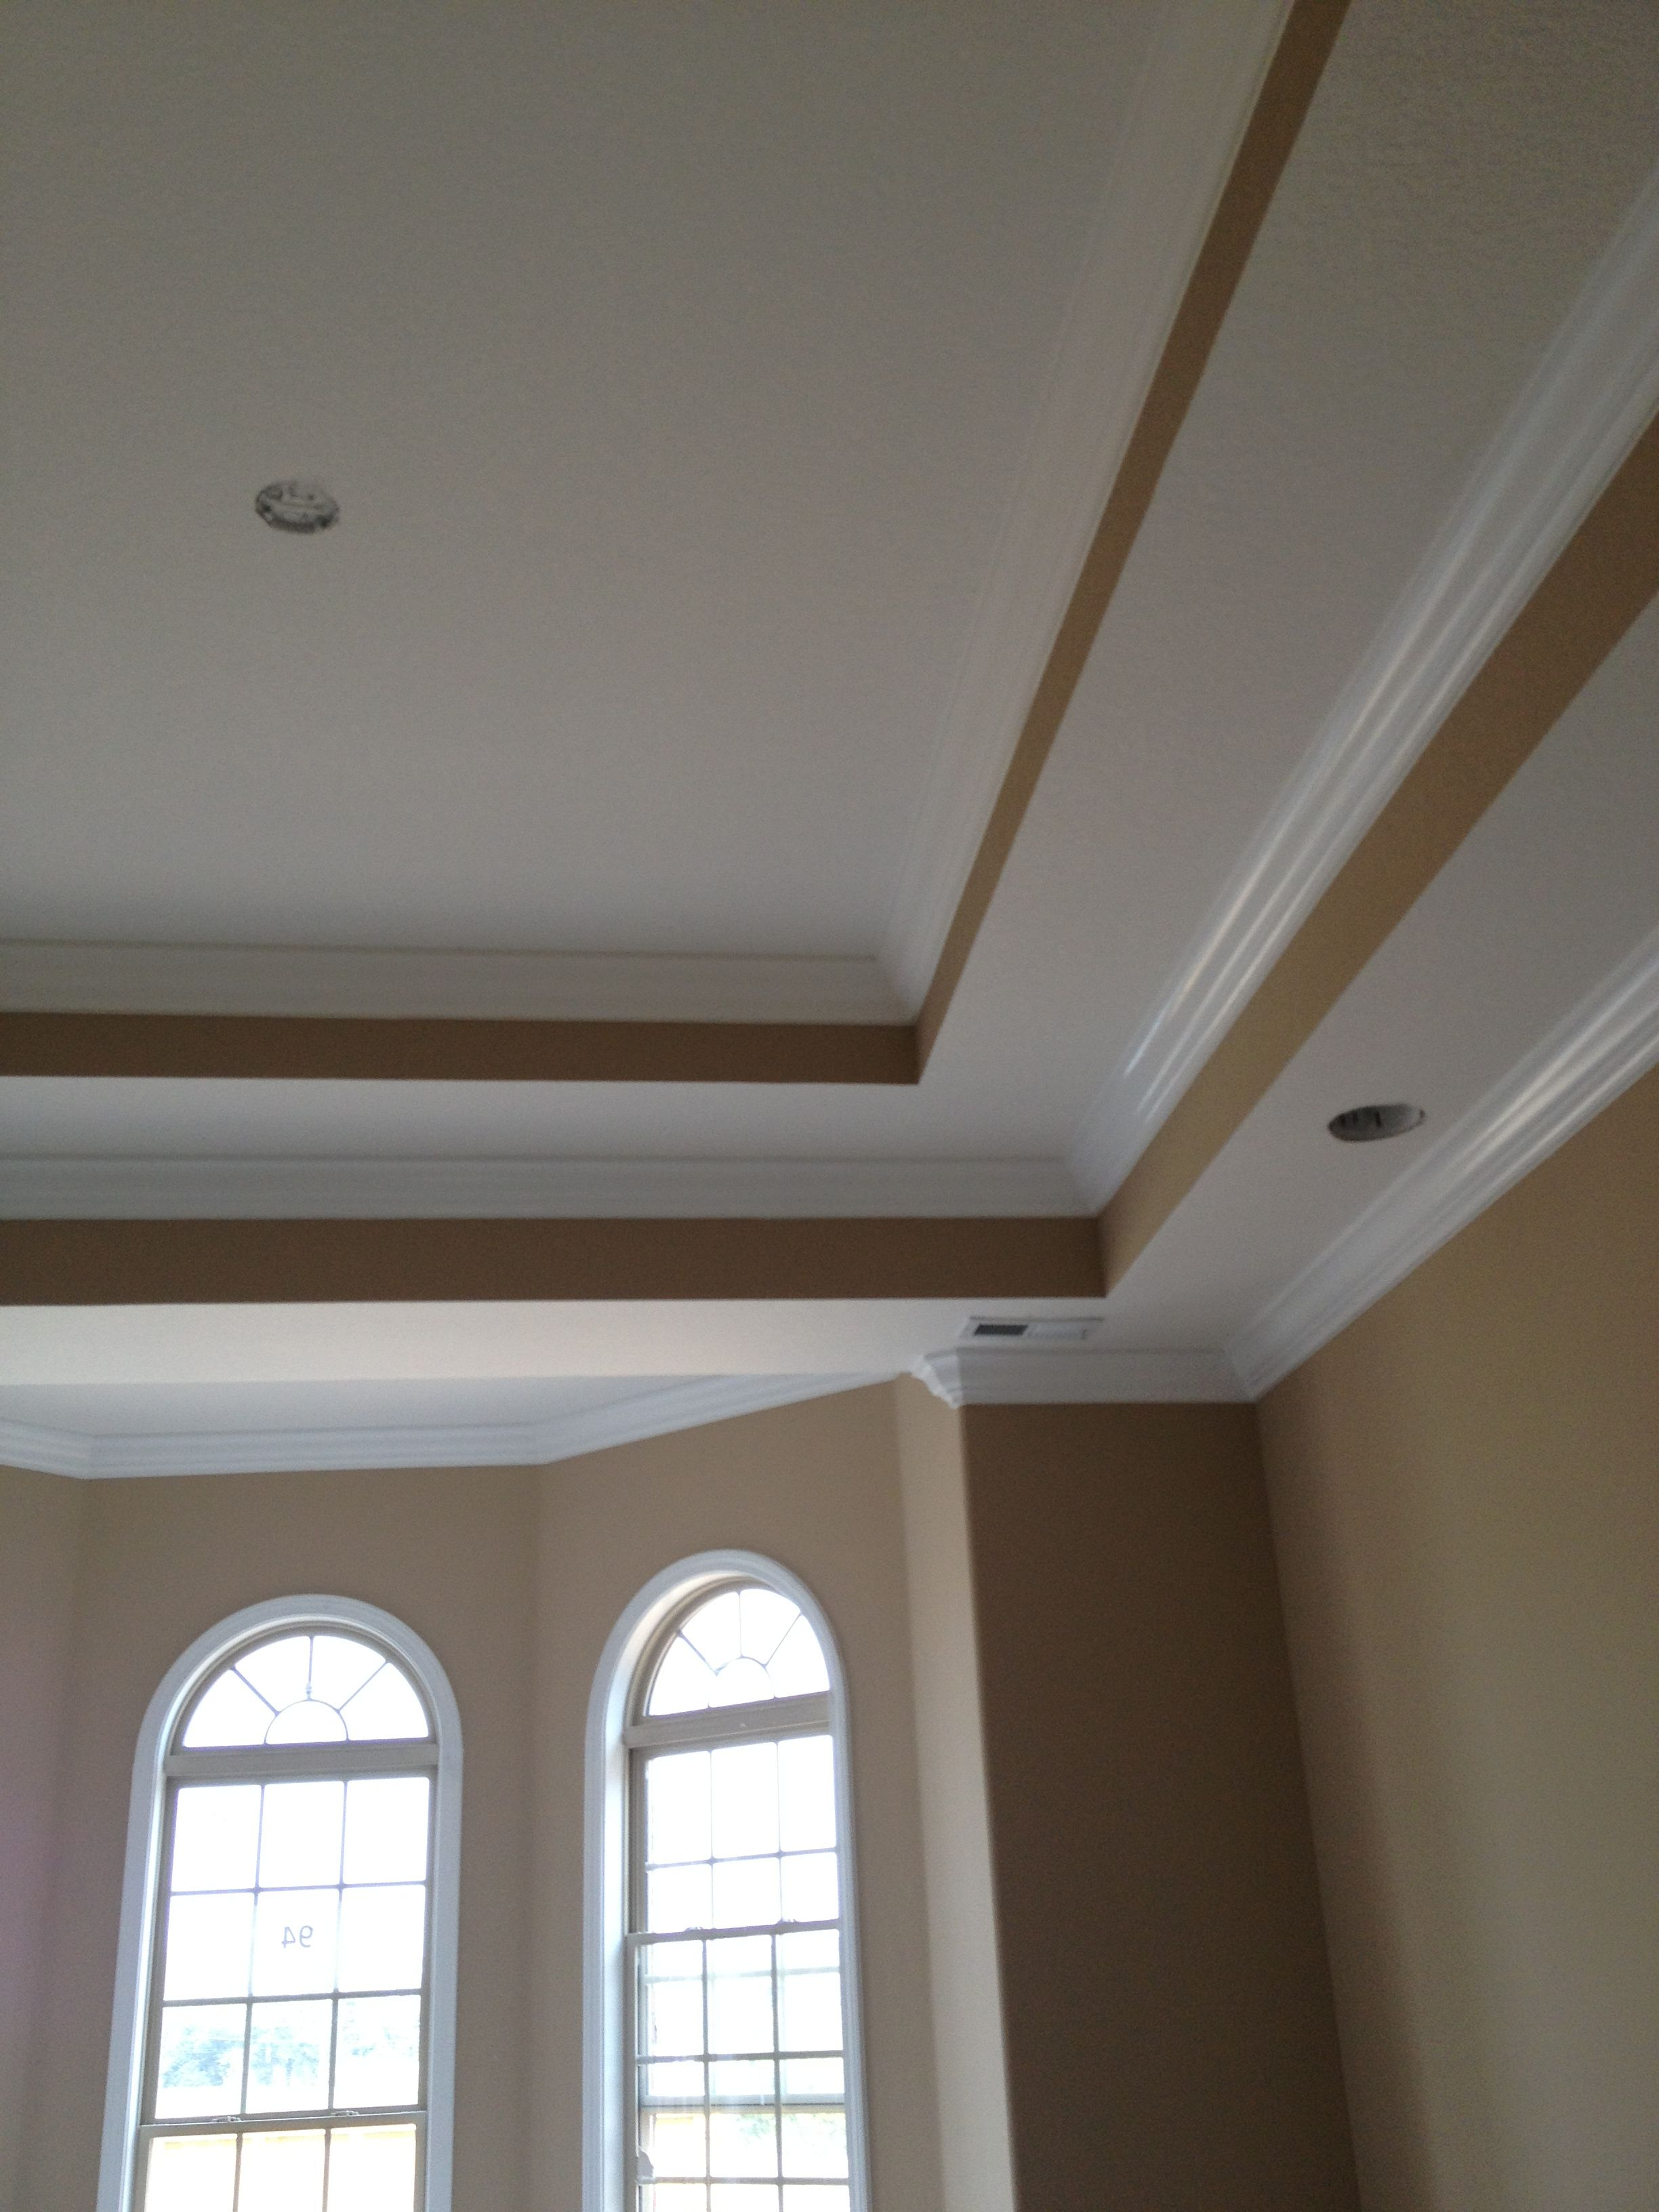 Double Tray Ceilings In Master Bedroom To Date Progress 10 14